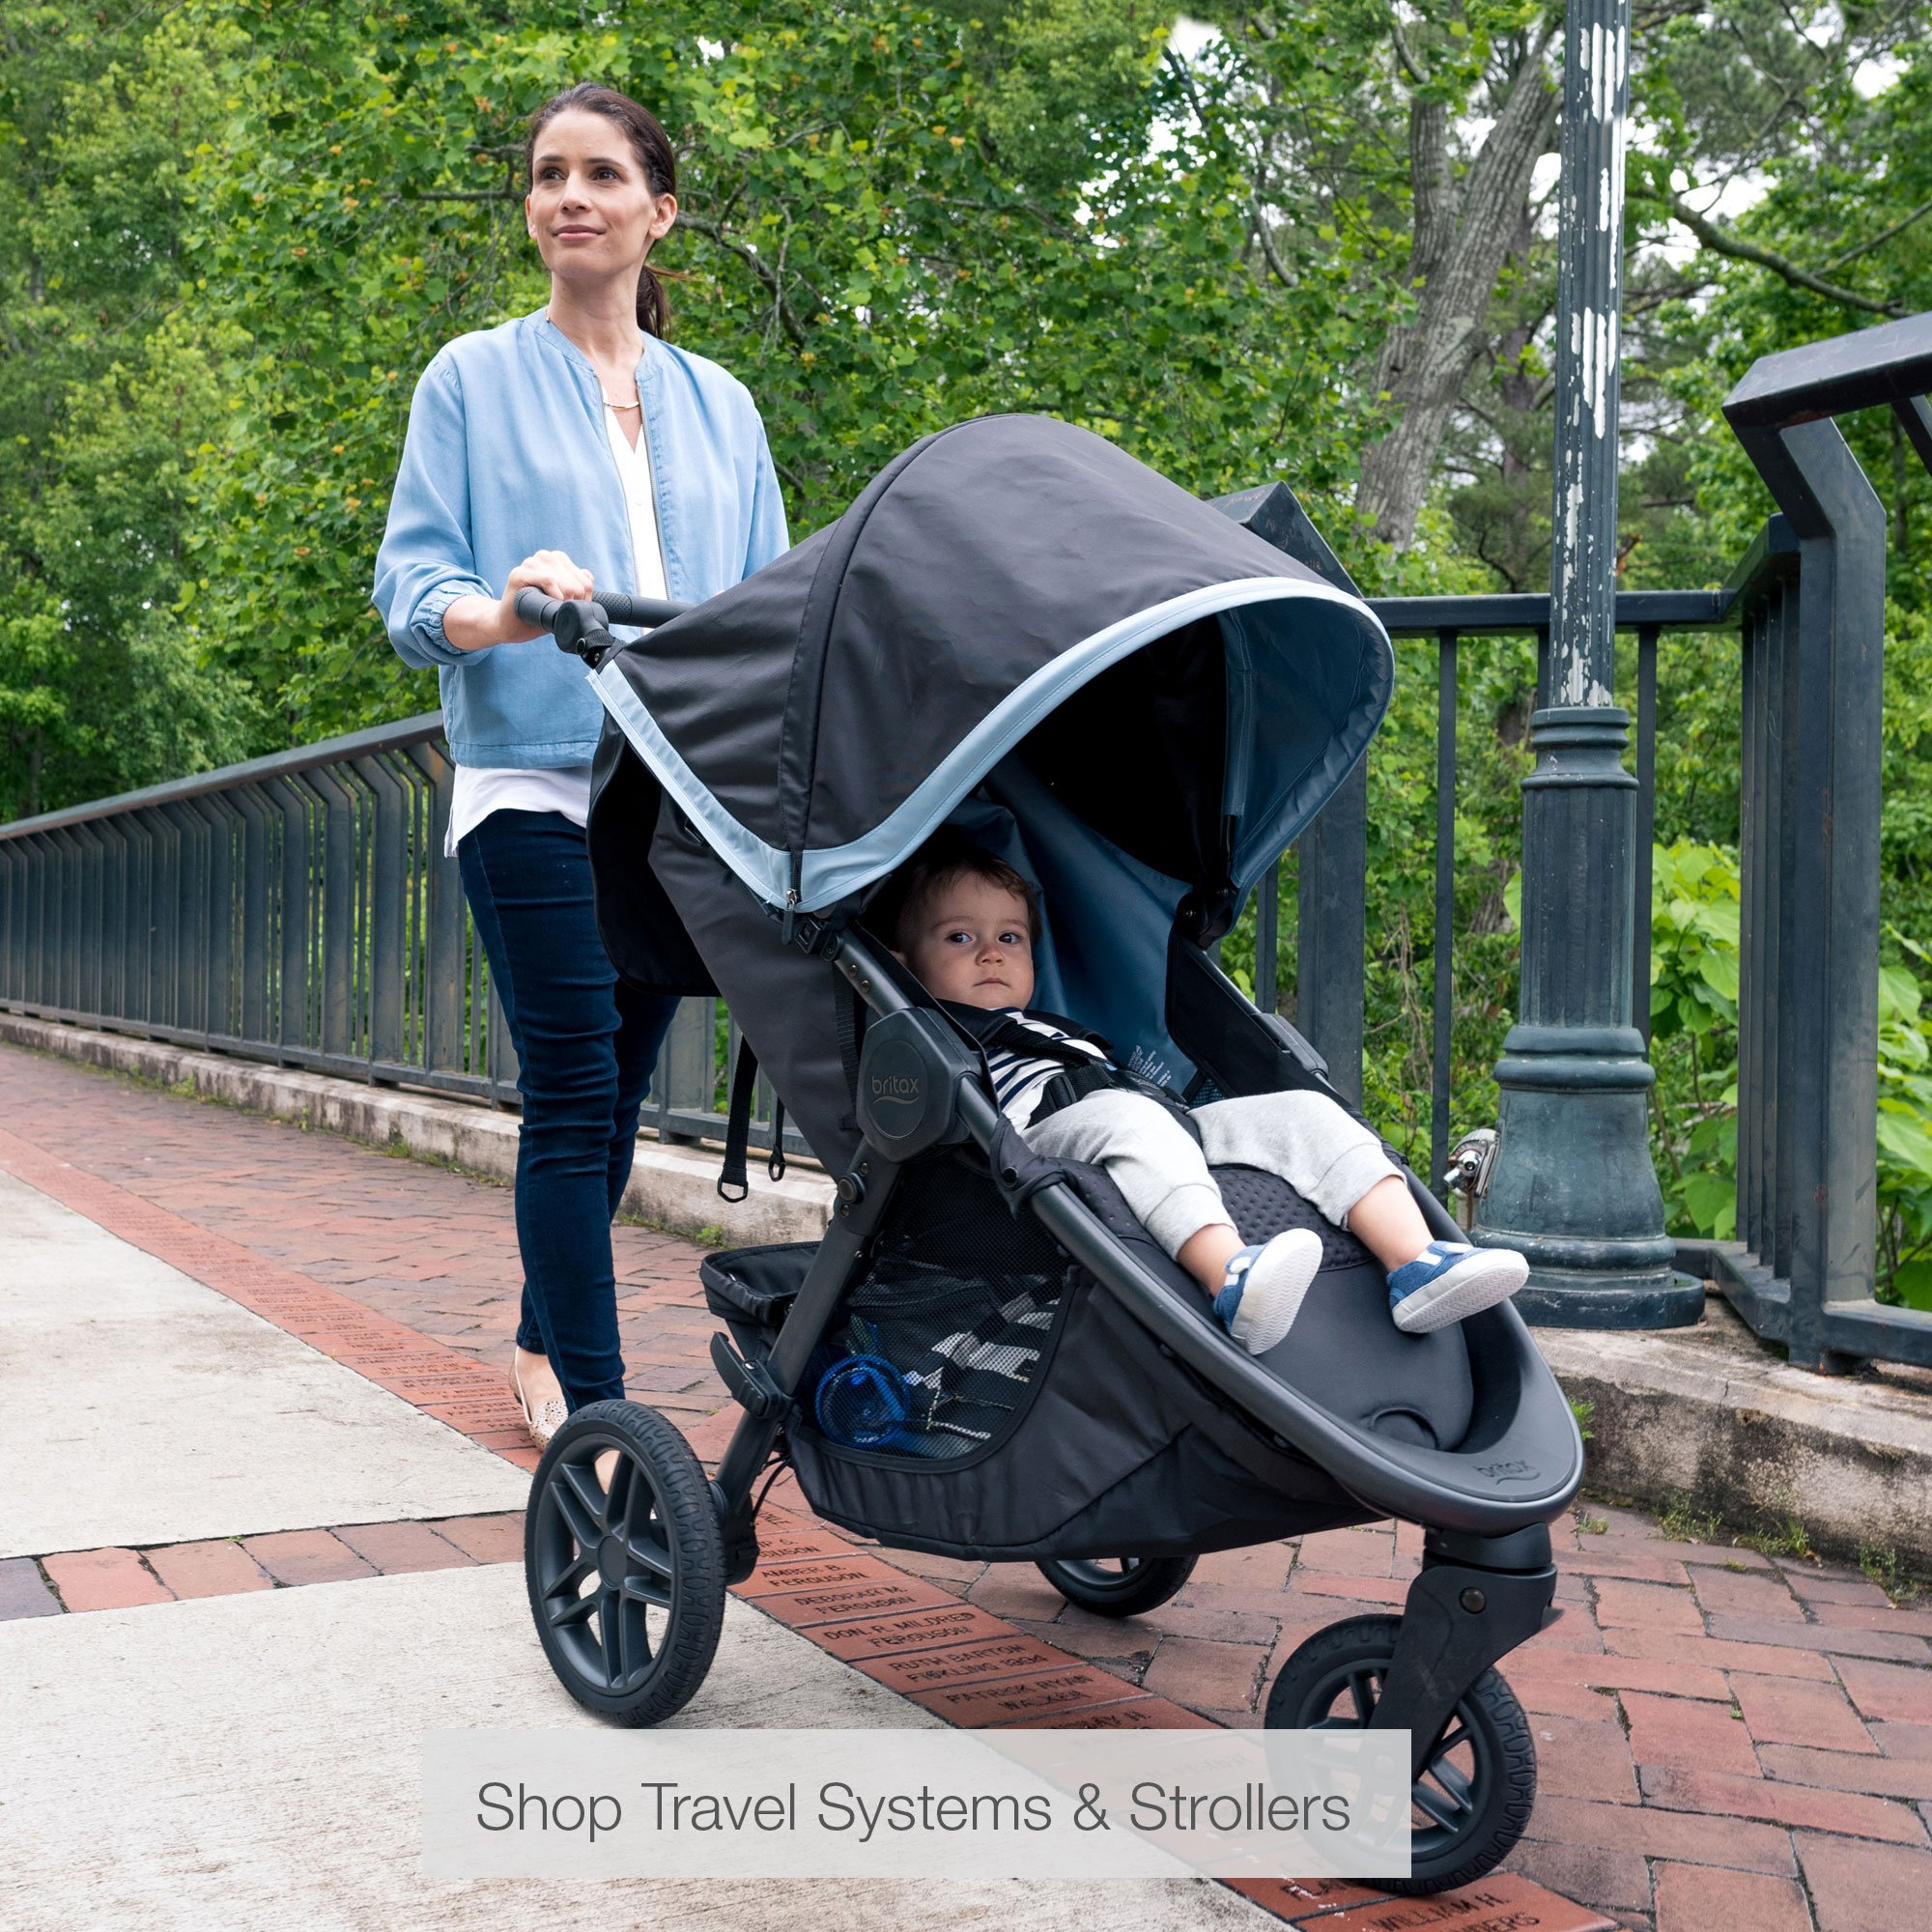 Shop Travel Systems & Strollers